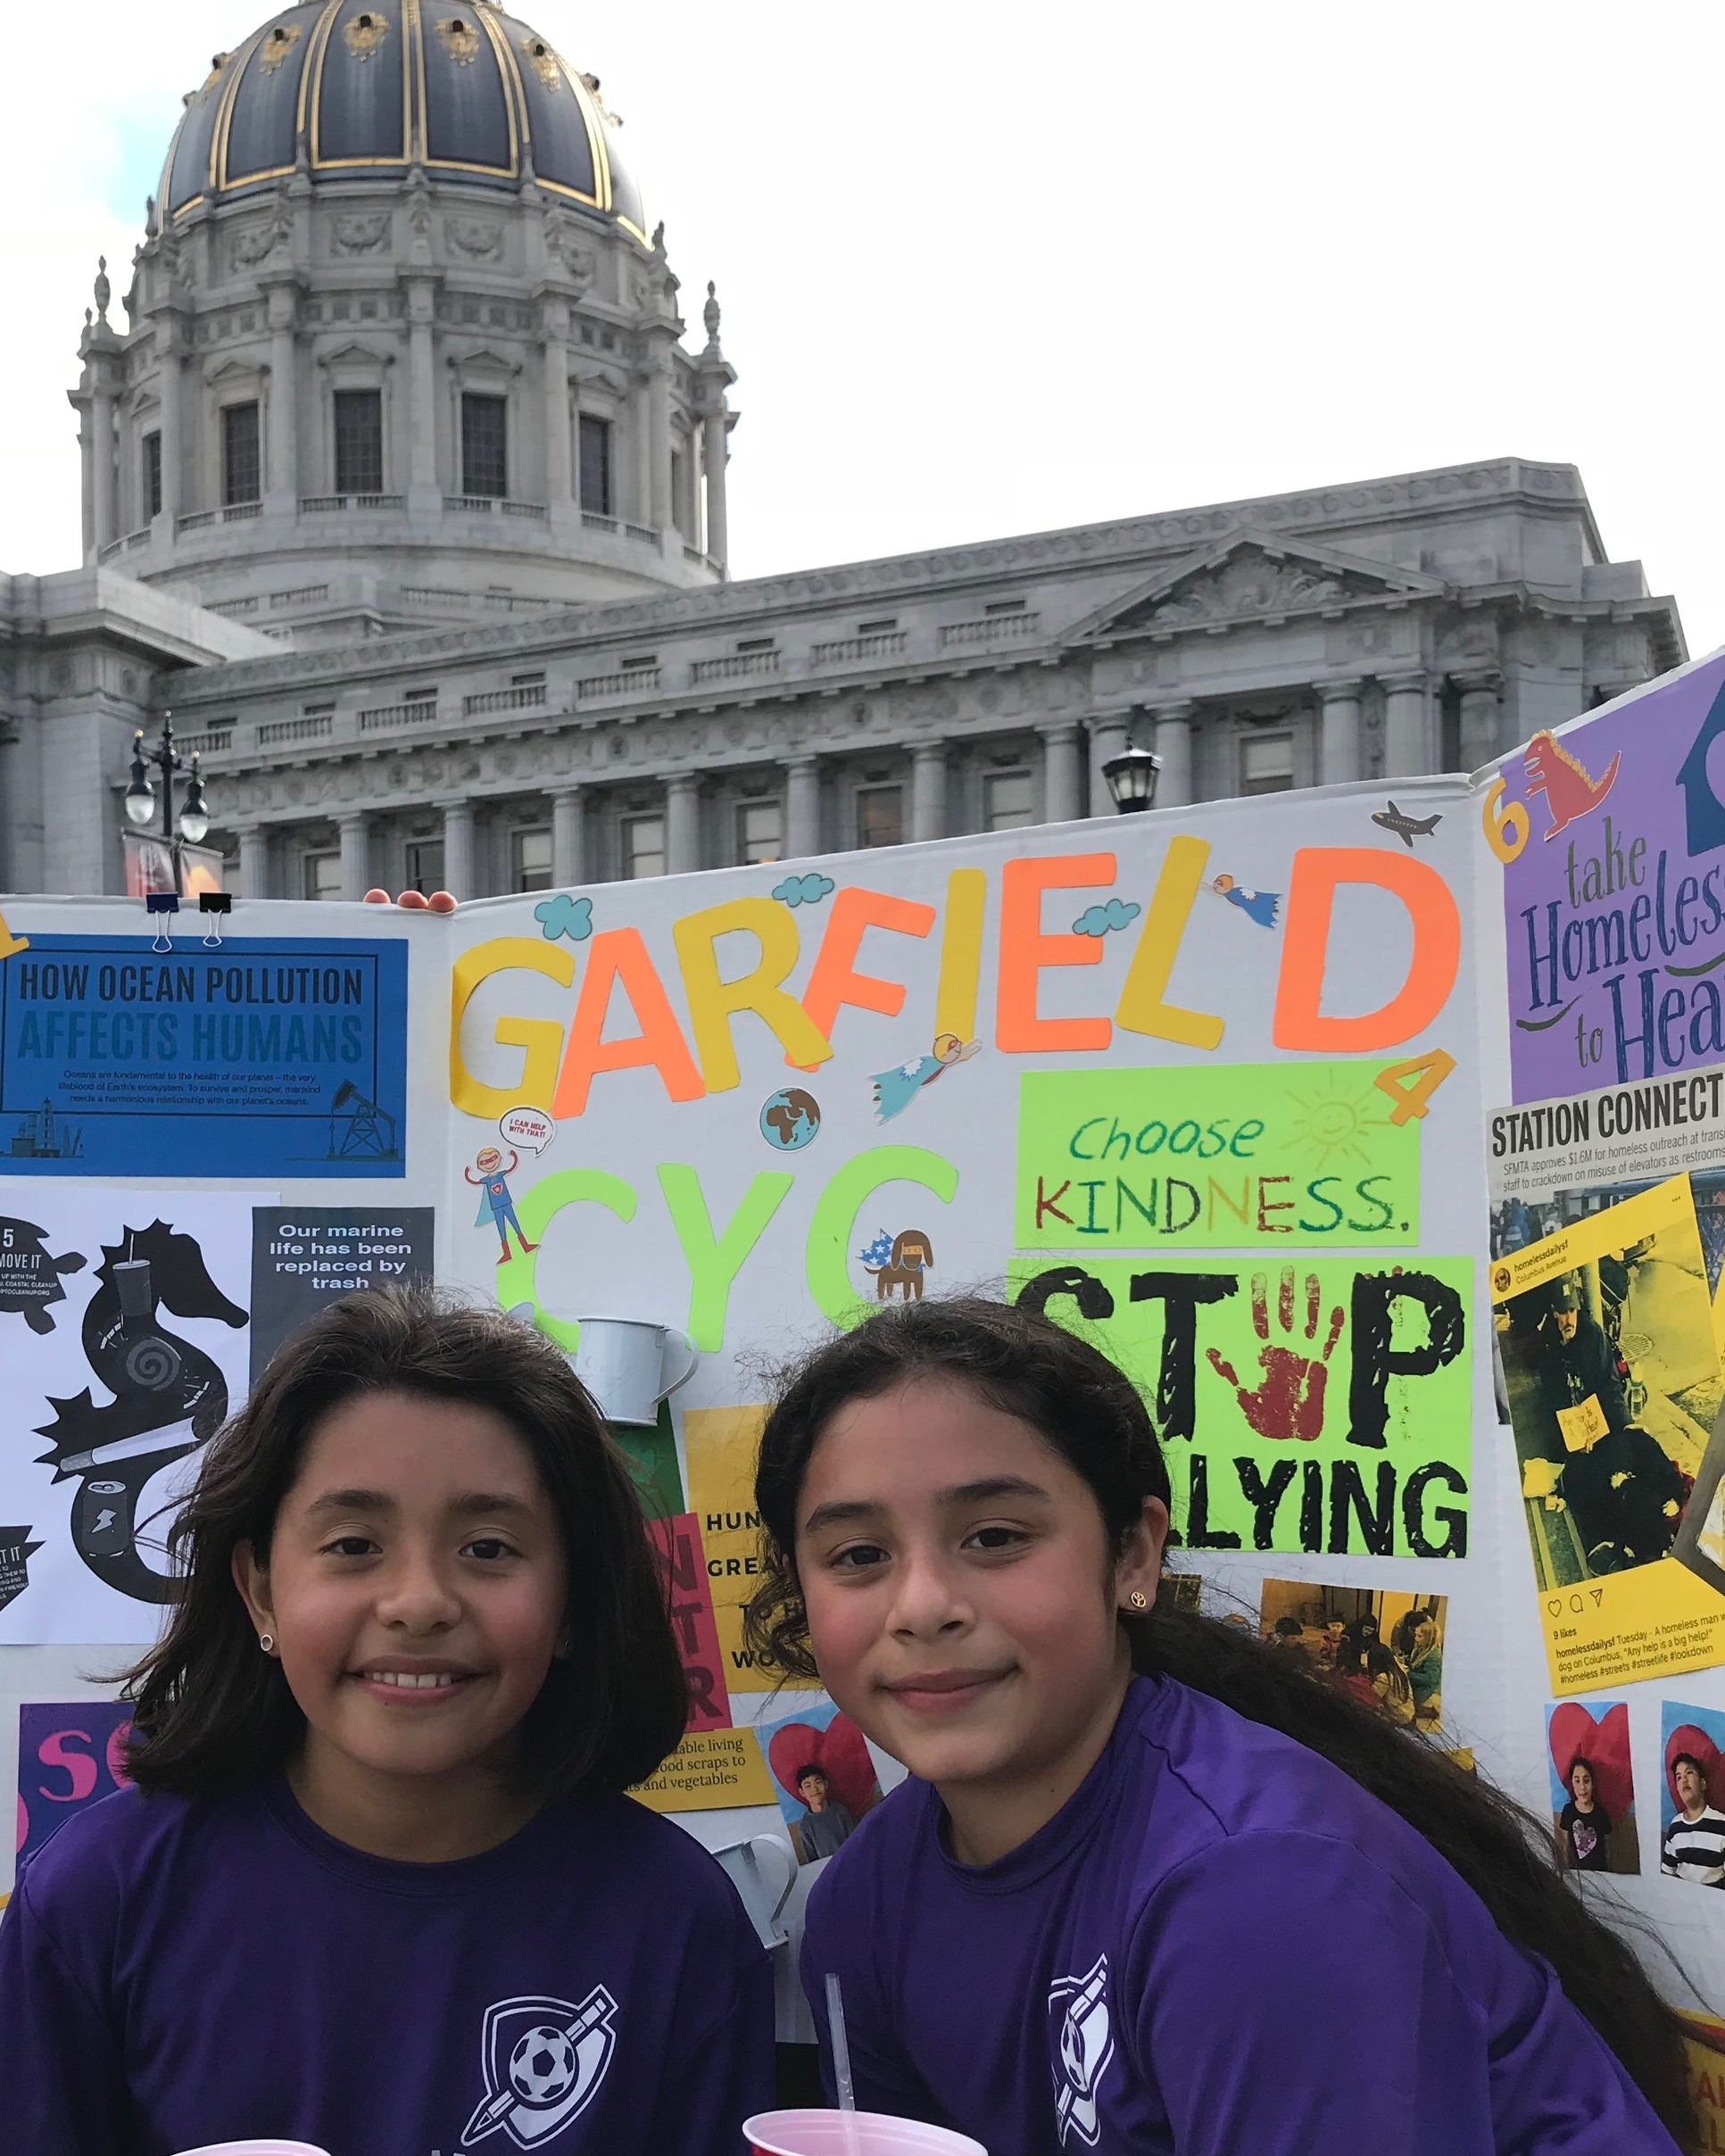 Third graders Seville Ramos and Briana Aleman from Garfield Elementary School